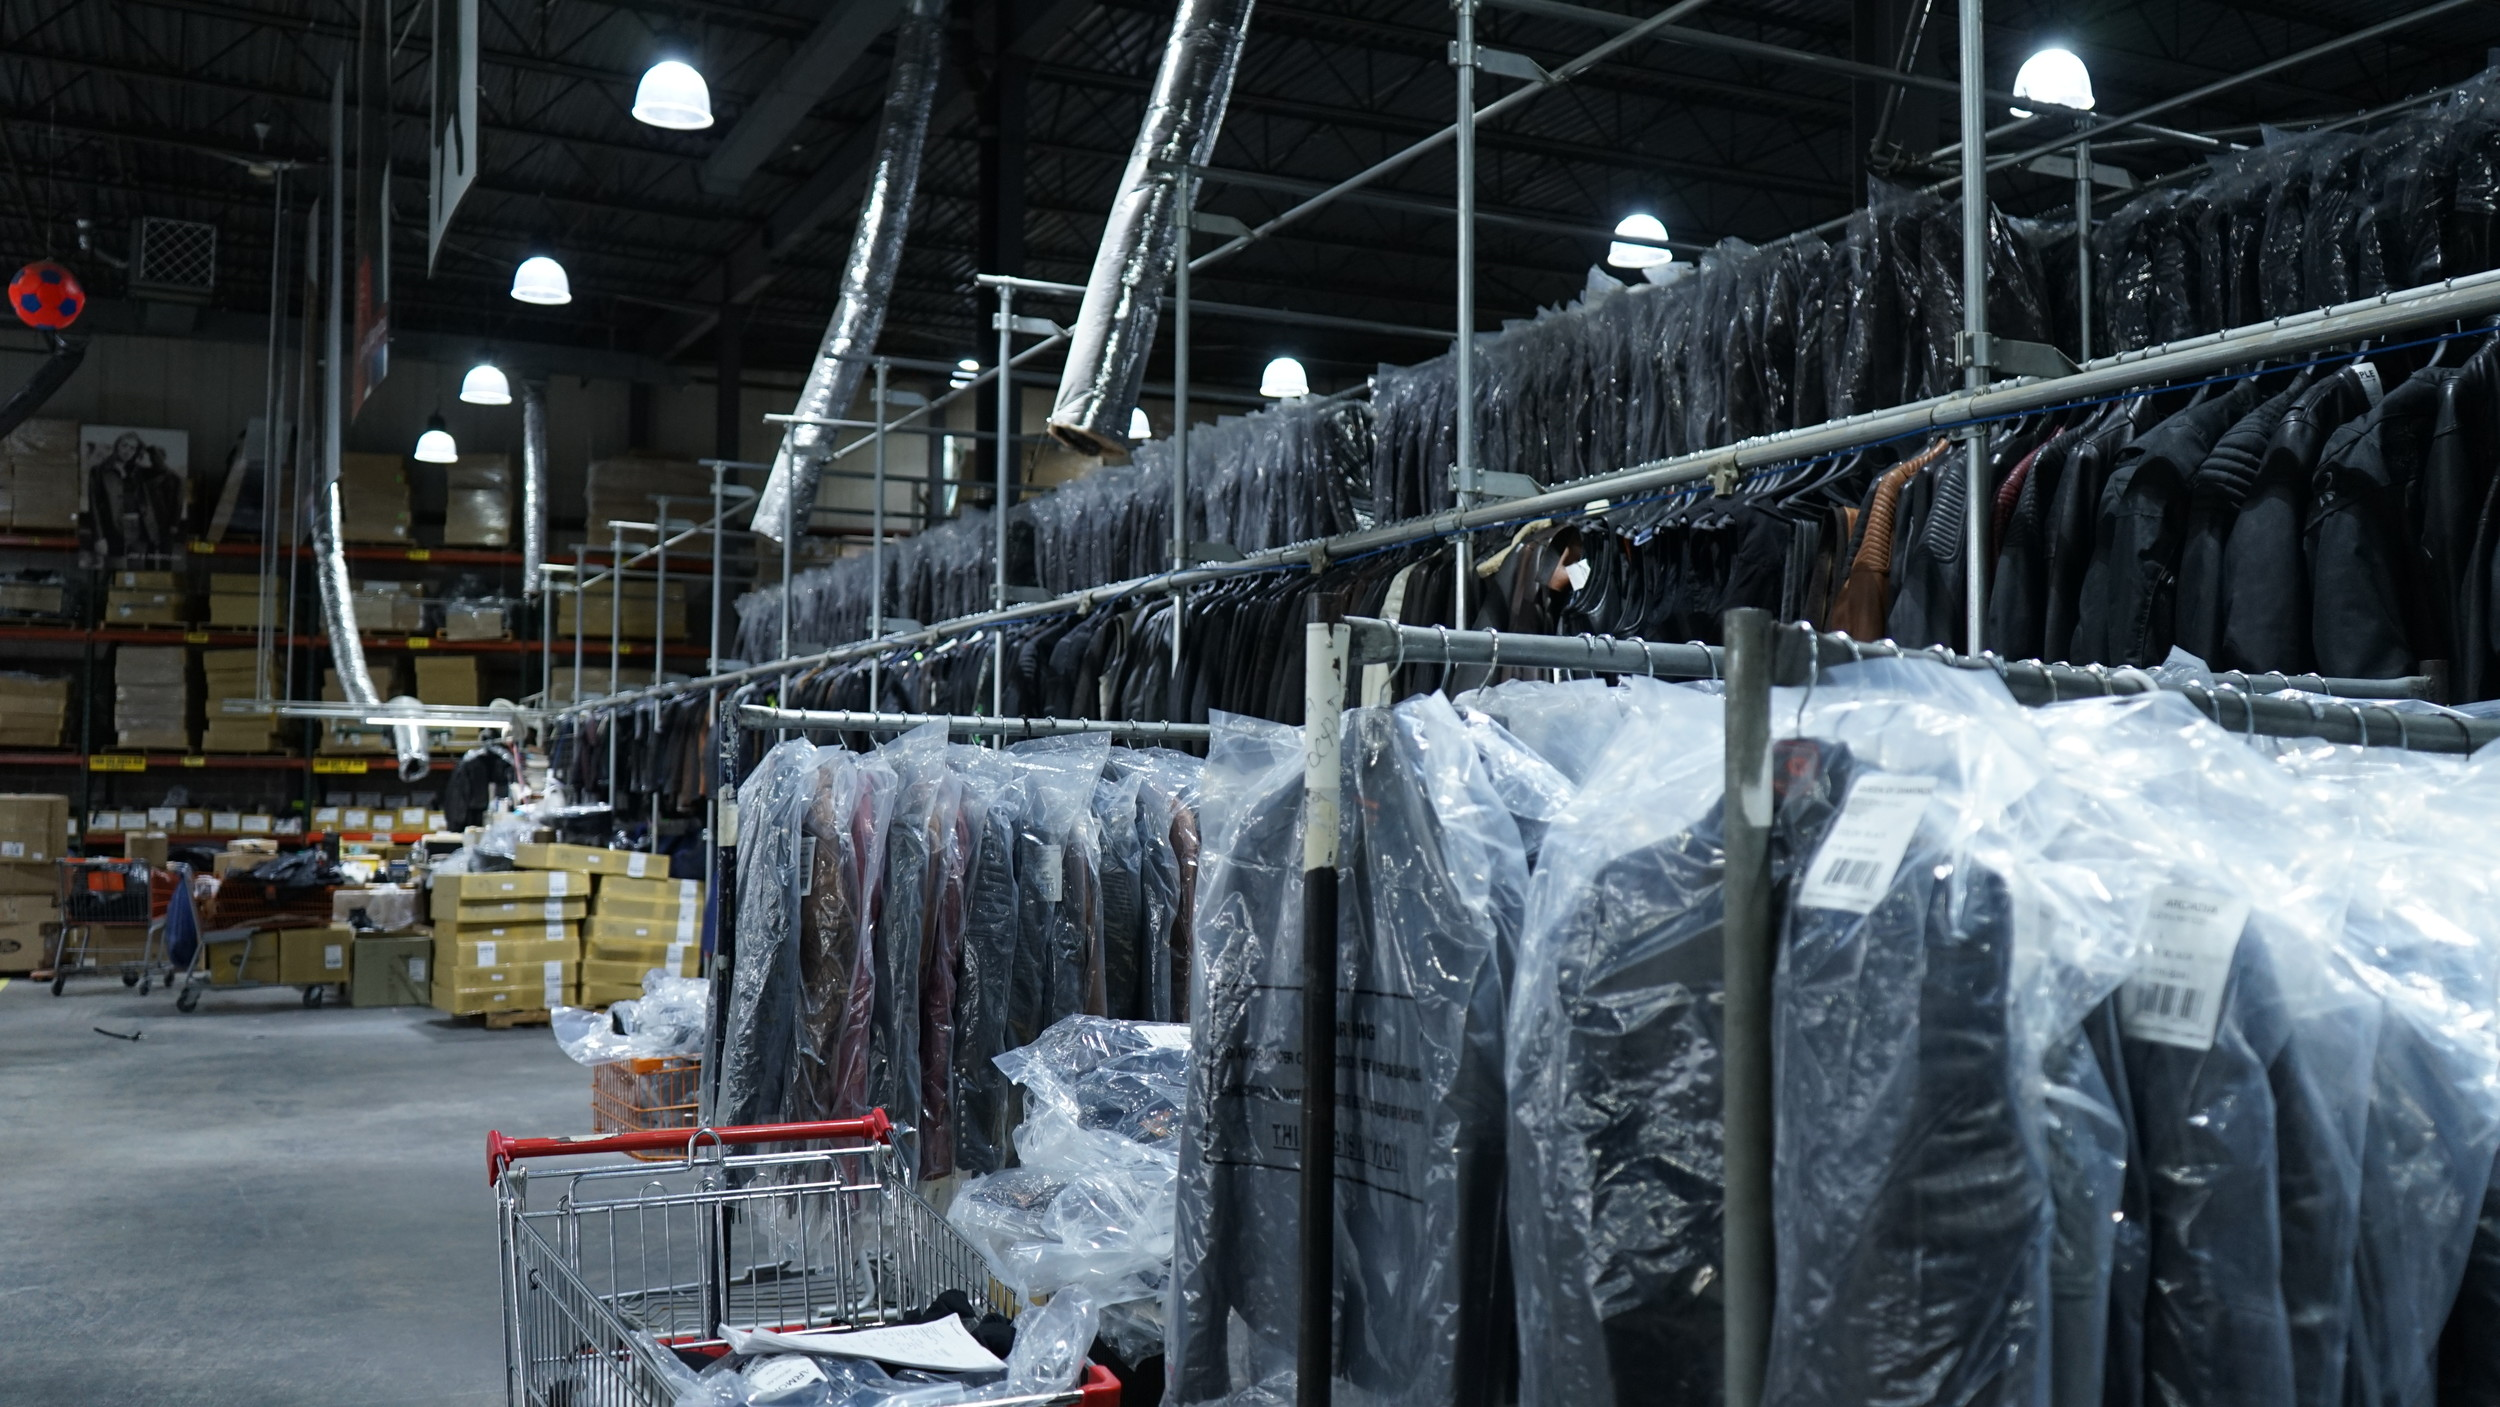 The company's Oceanside plant houses tens of thousands of leather clothing products on humidity- and temperature-controlled racks, before they are shipped to shops across the country.